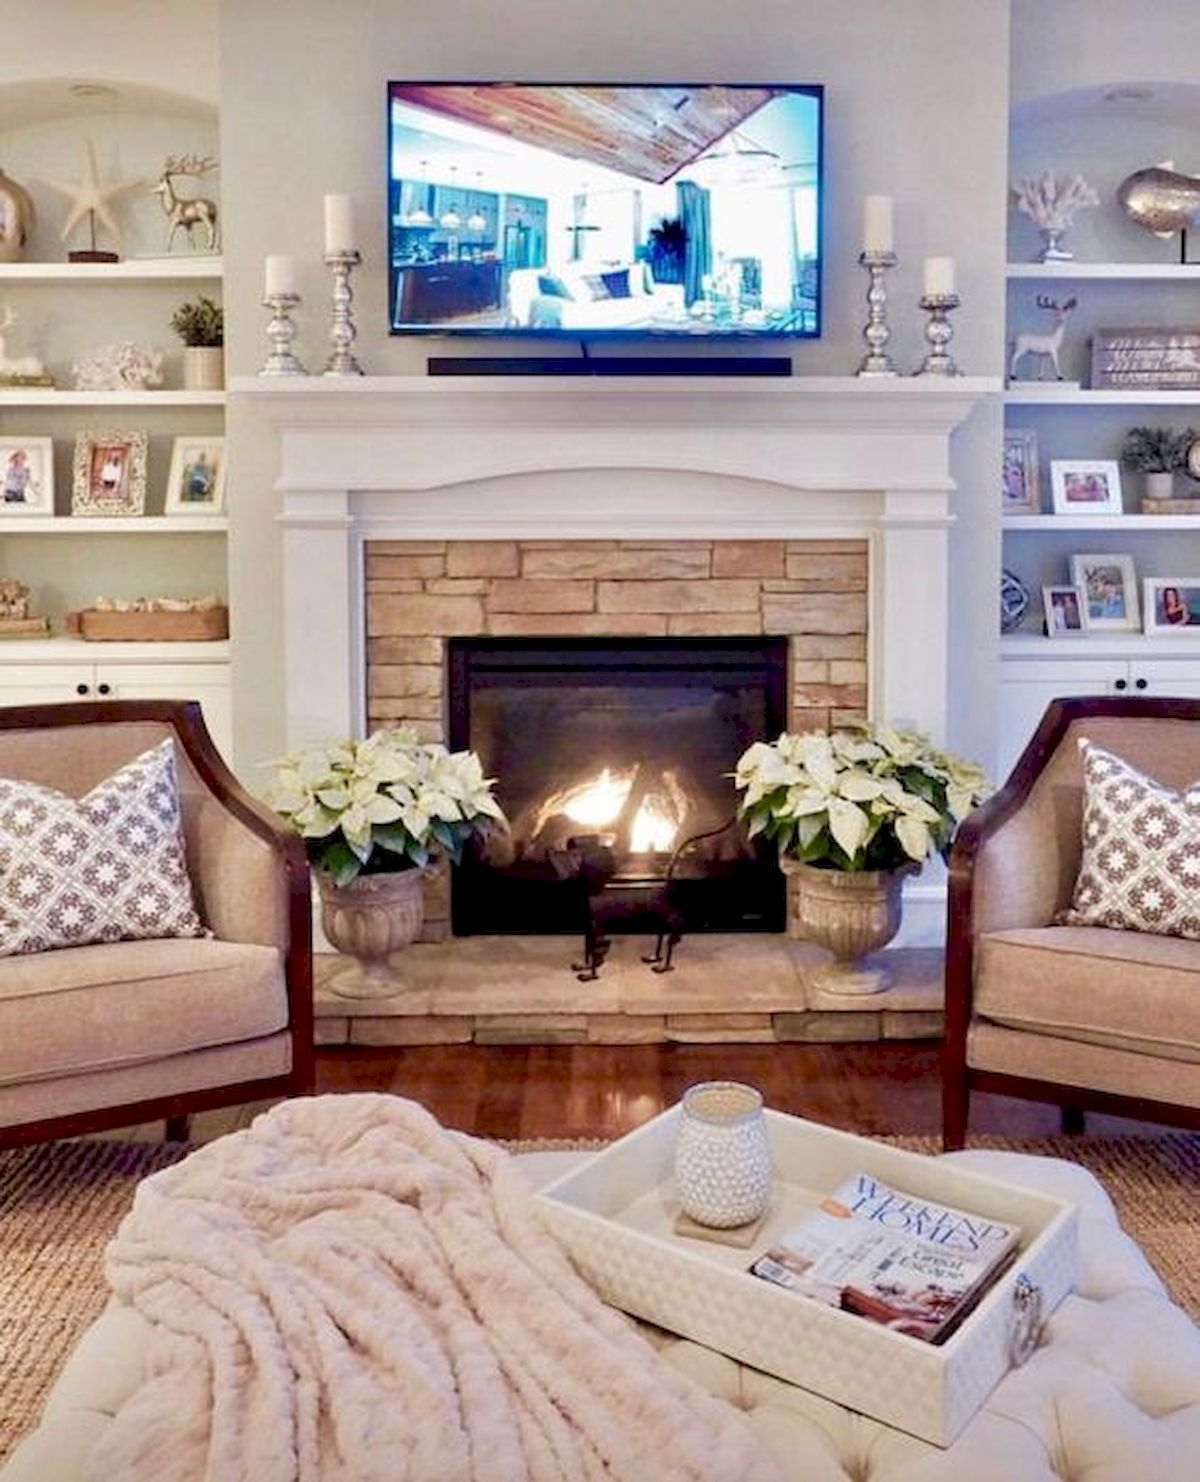 Pin By Carolyn Huffine On Decorating Ideas Living Room With Fireplace Family Room Home